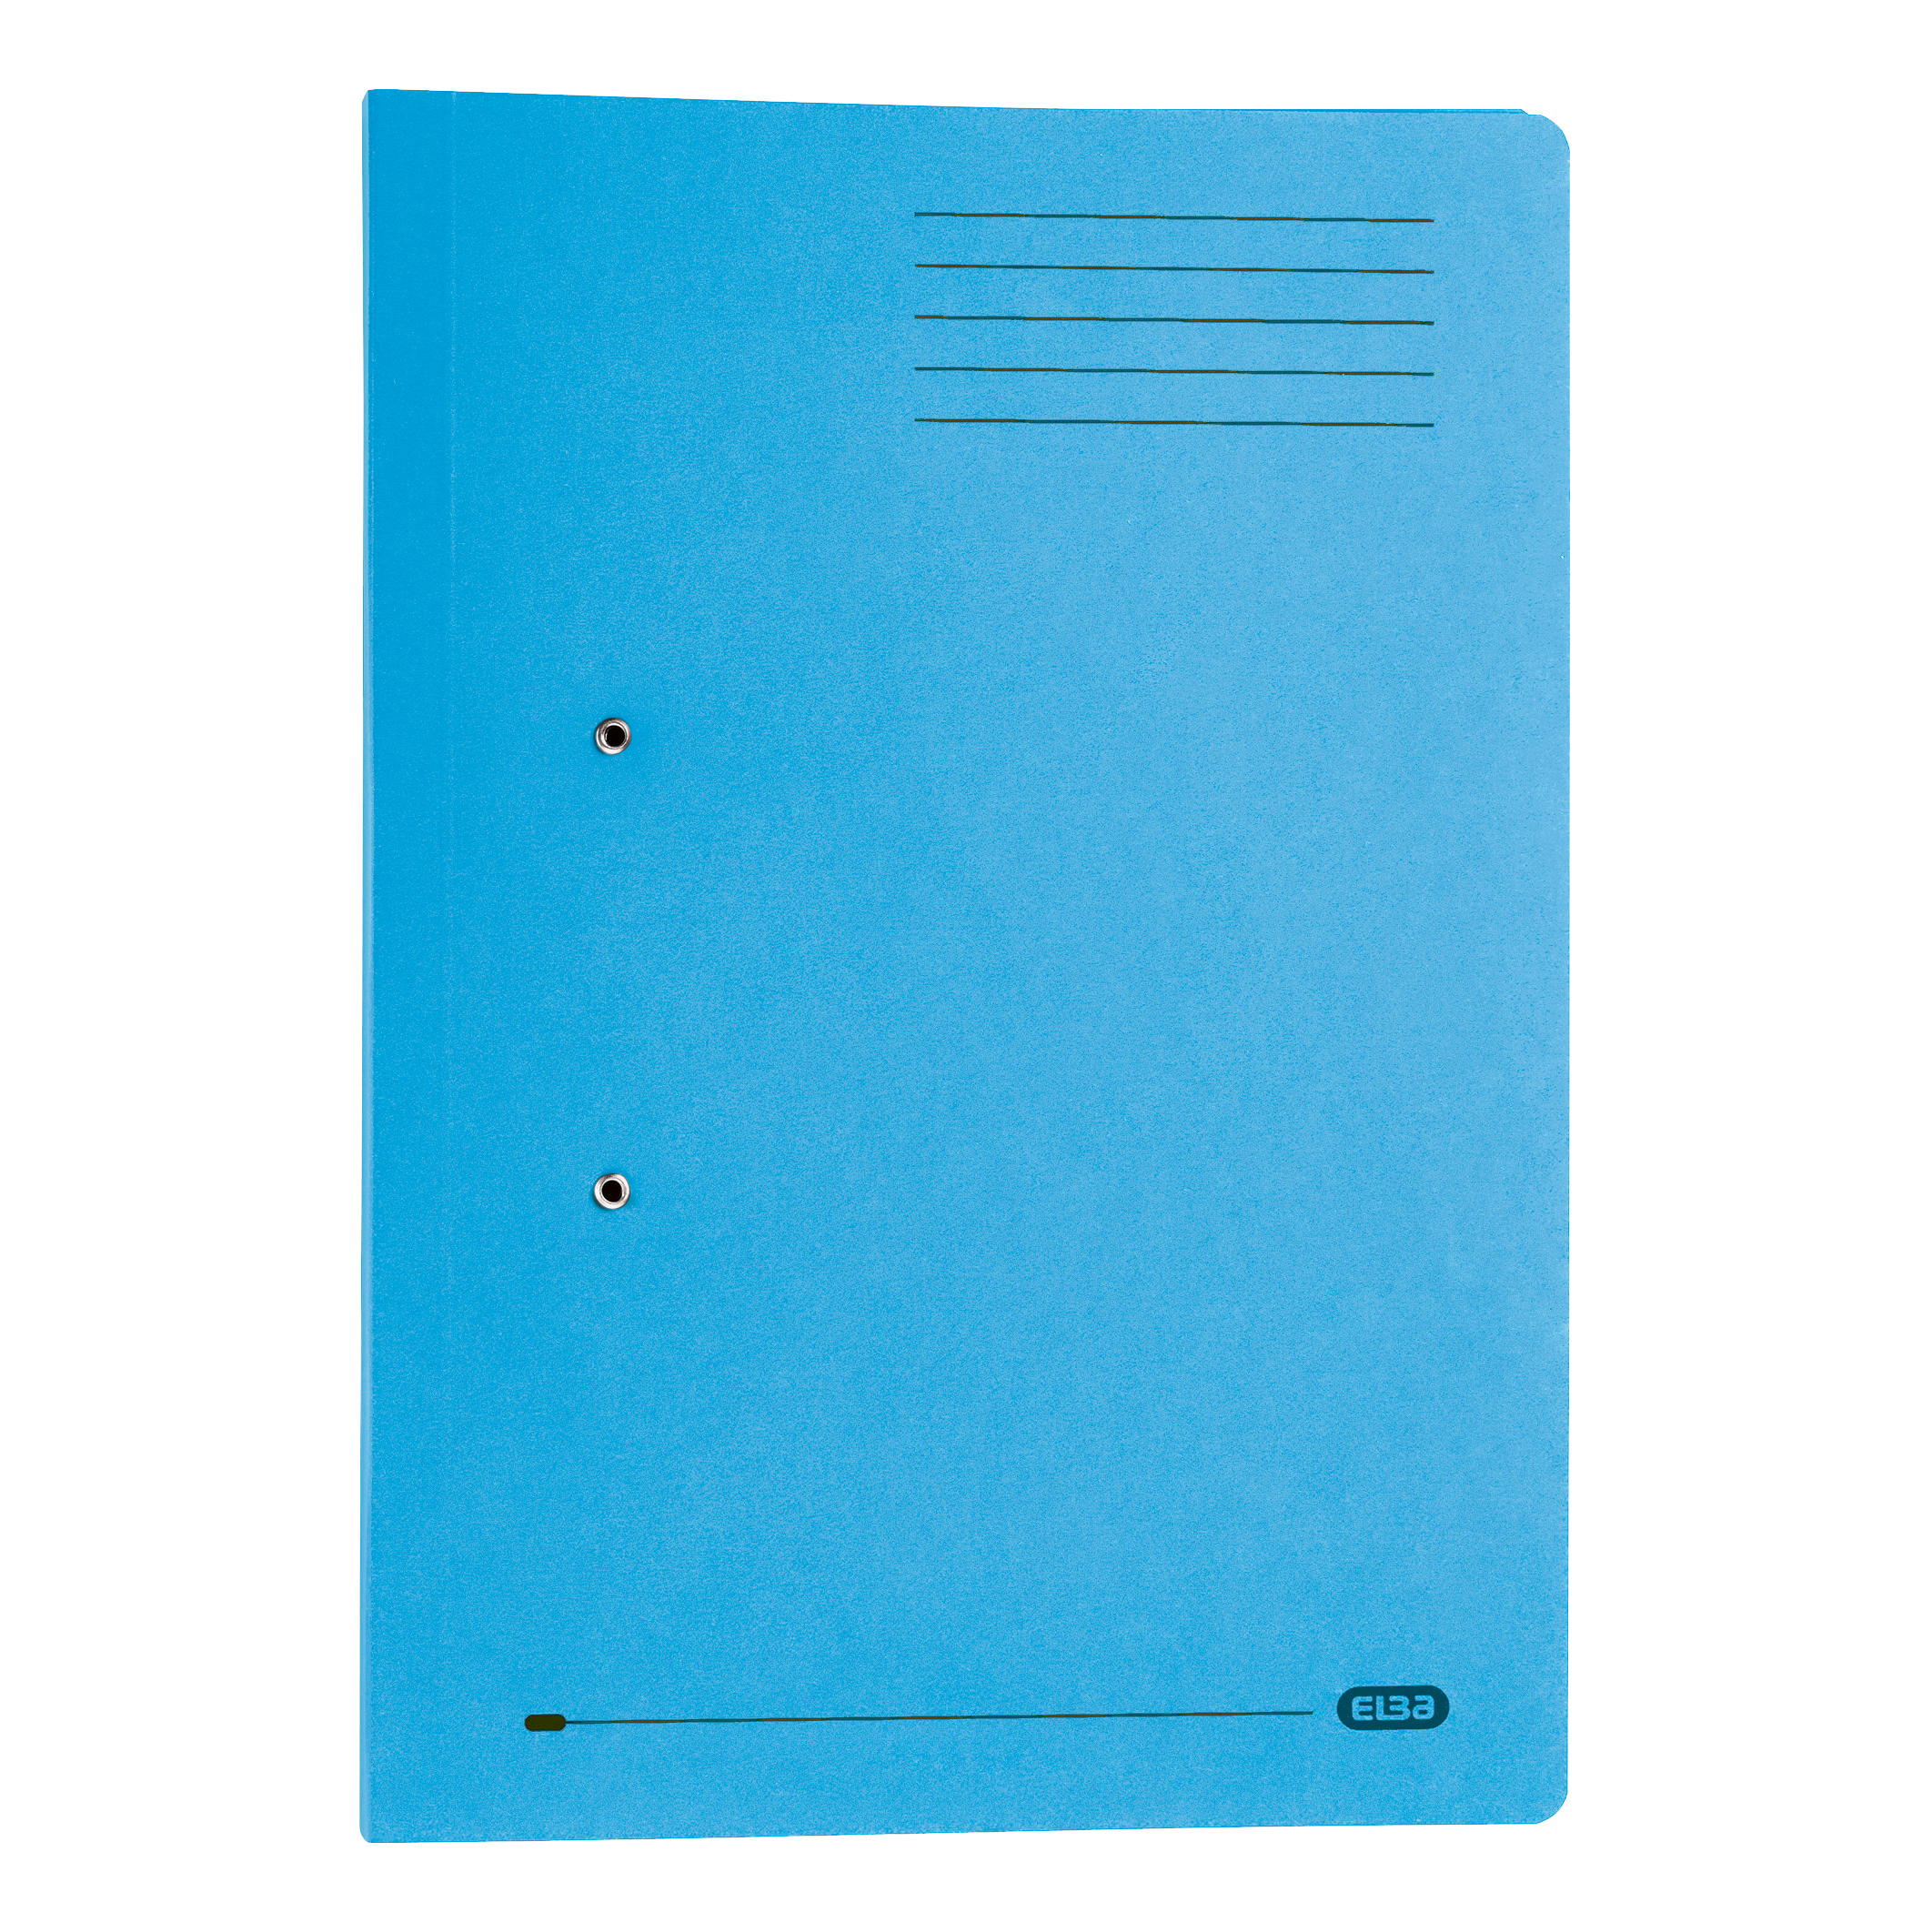 Elba Strongline Transfer Spring File Recycled Pocket 320gsm 36mm Foolscap Blue Ref 100090146 Pack 25